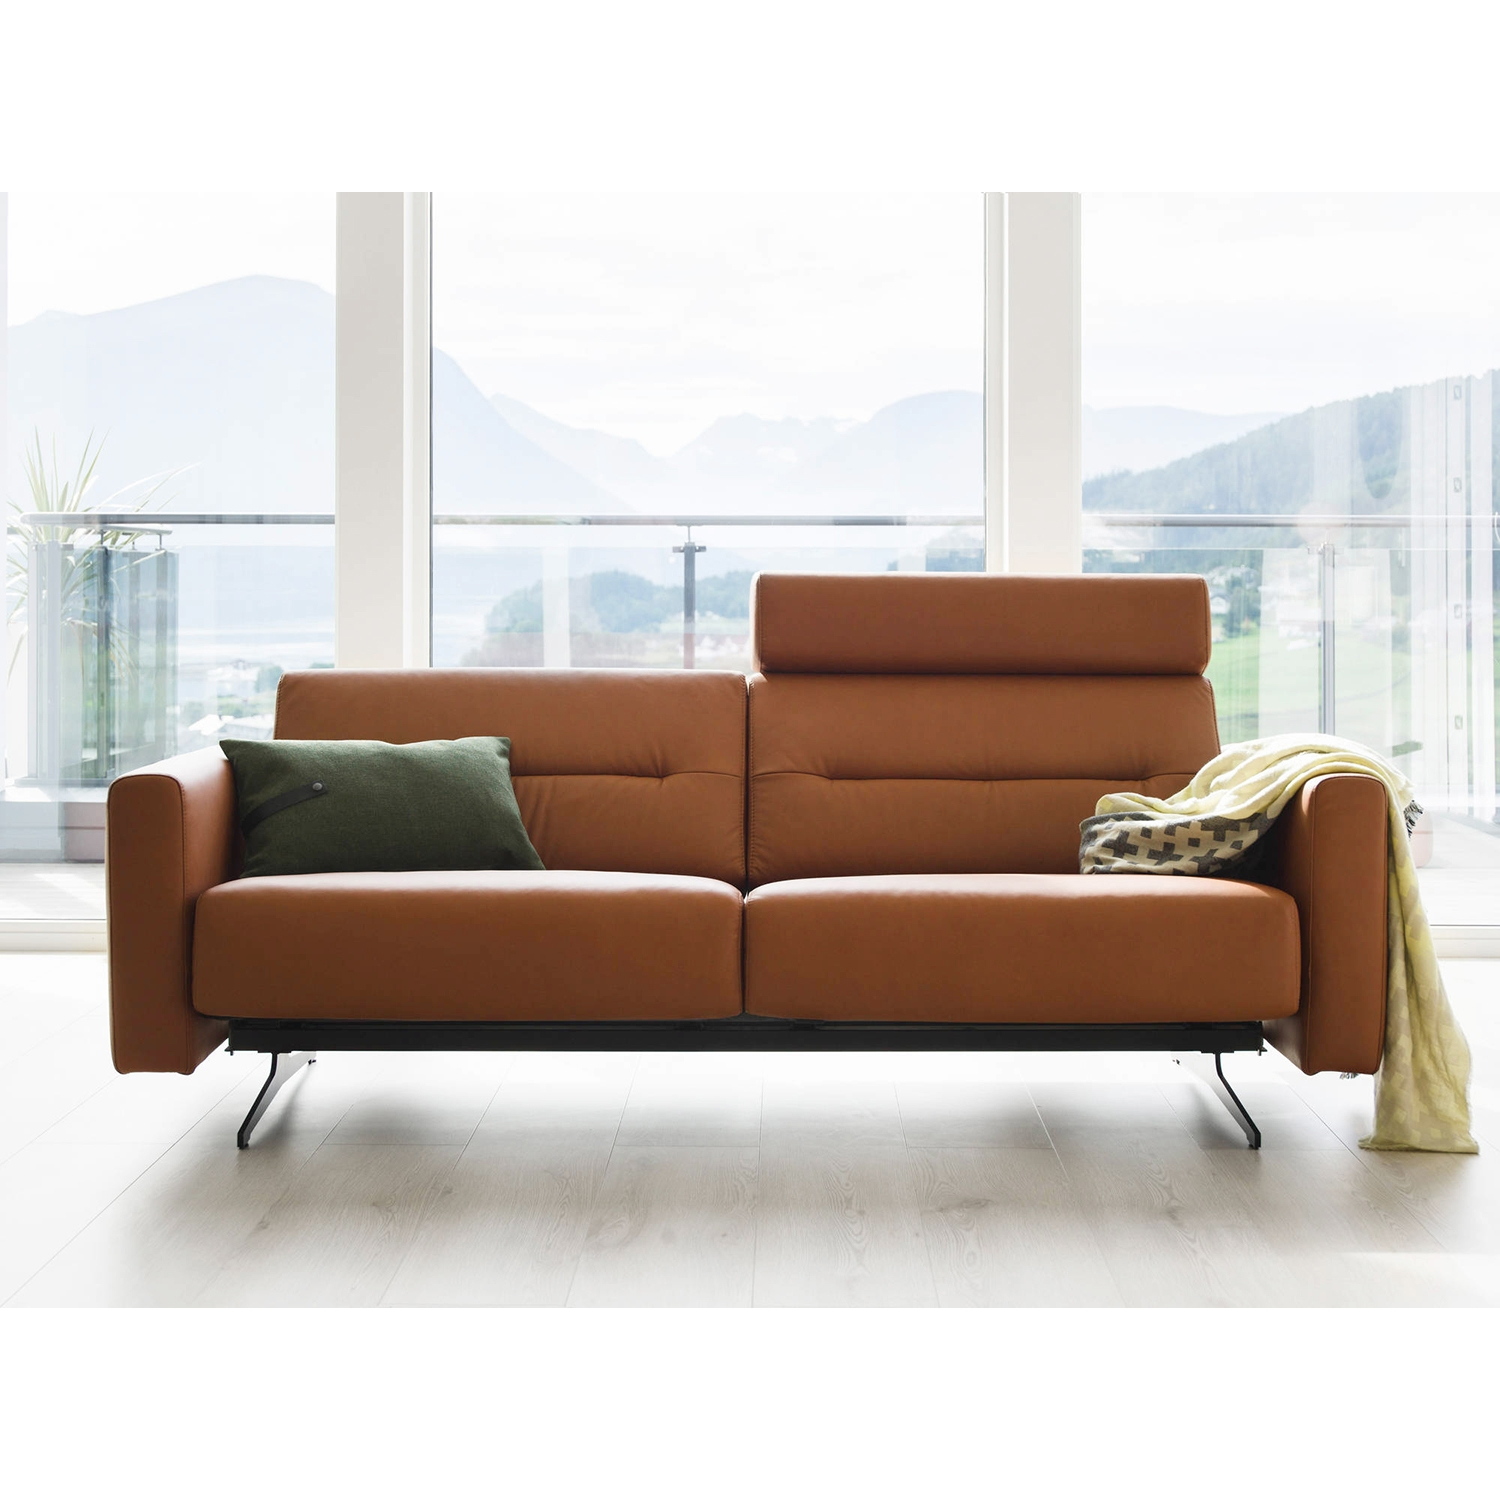 Image of Stressless Stella 2 Seater Leather Sofa With Headrest, Paloma Copper